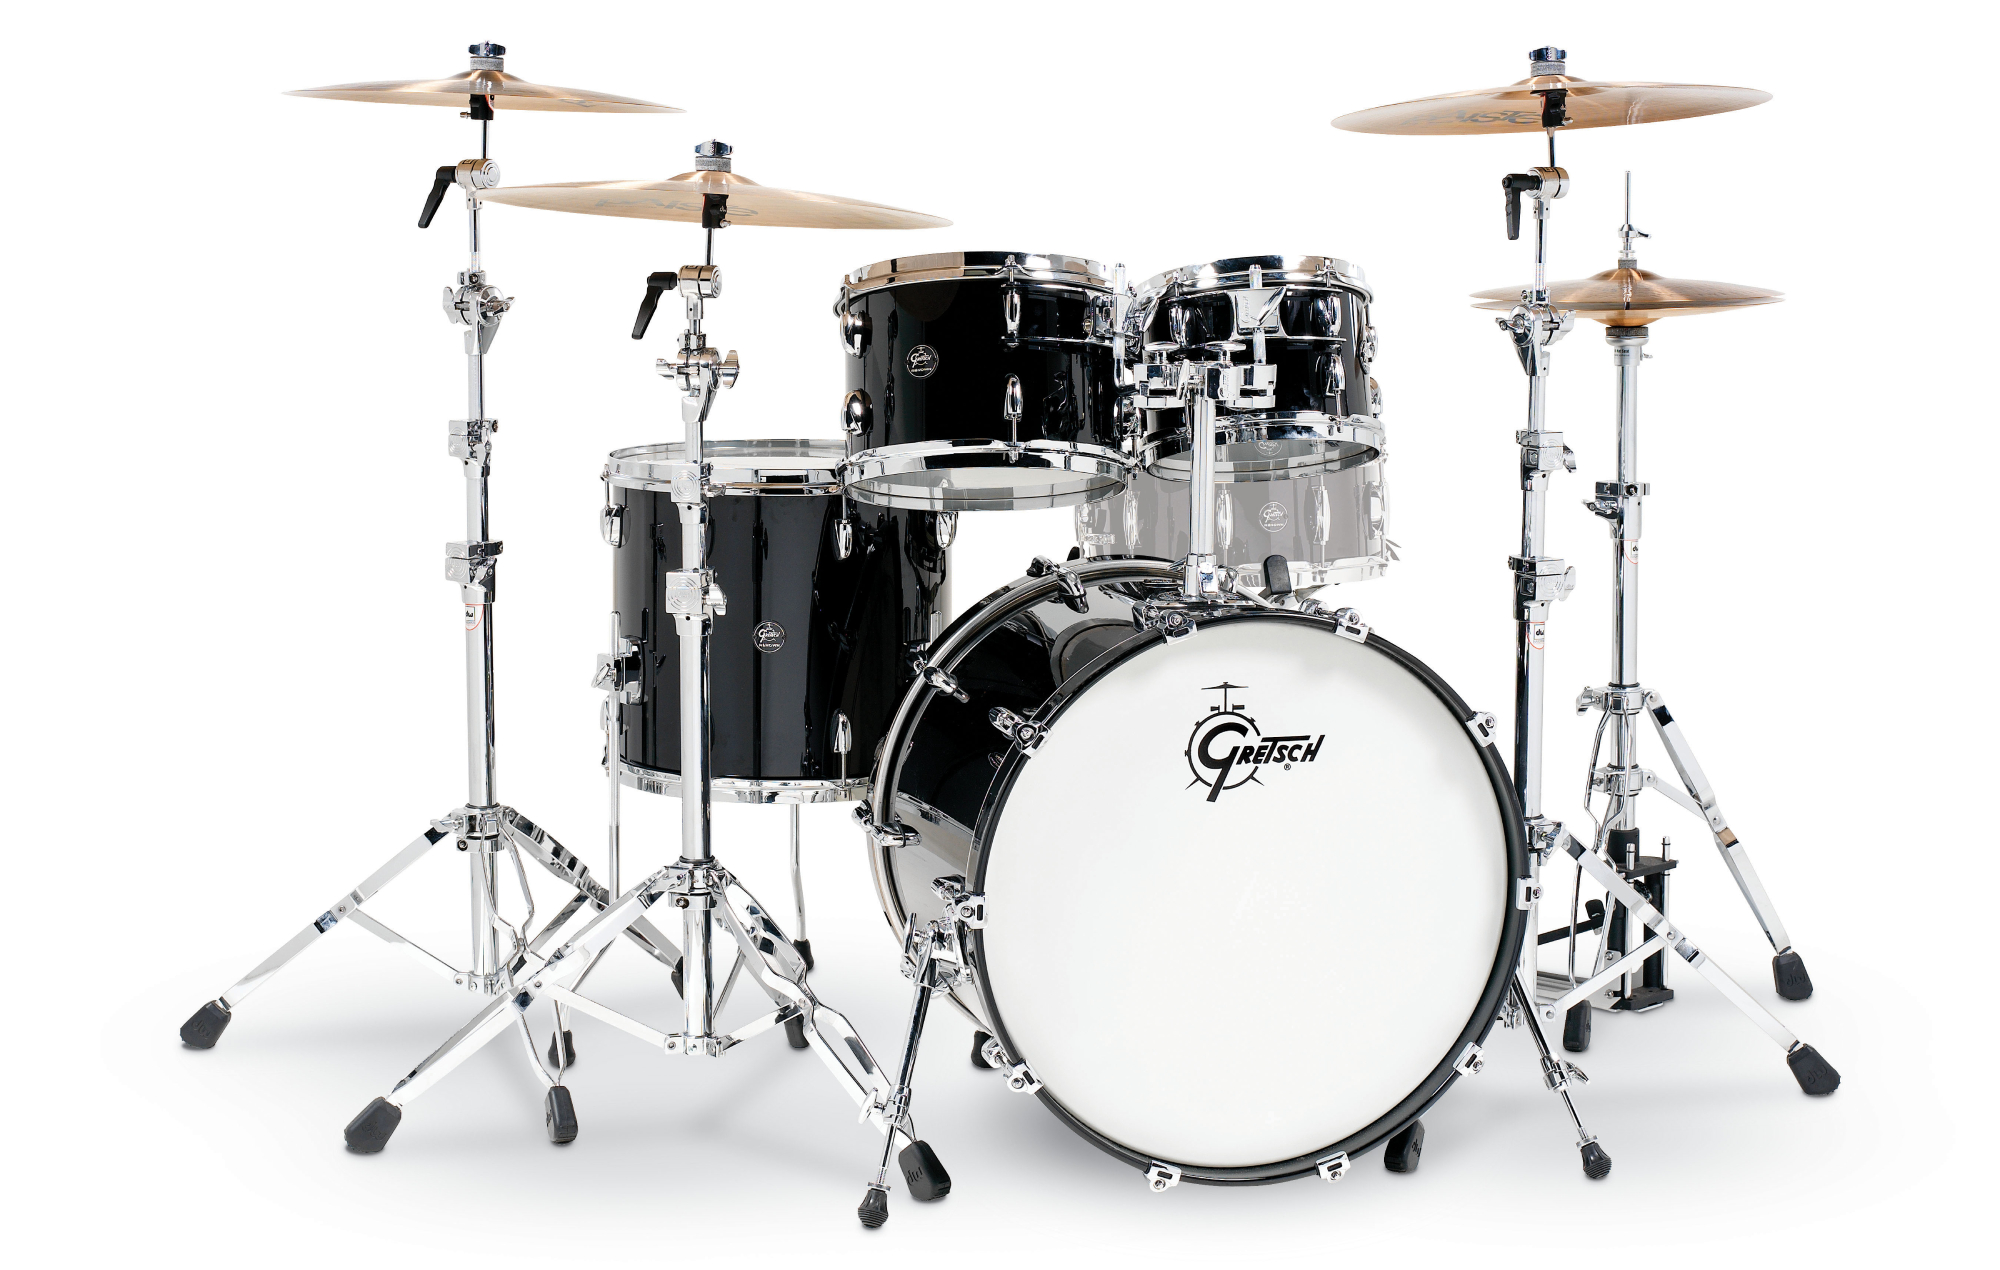 Royal Blood fans can win the Gretsch drum kit played by Ben Thatcher in their new video for 'Typhoons'. Credit: Press